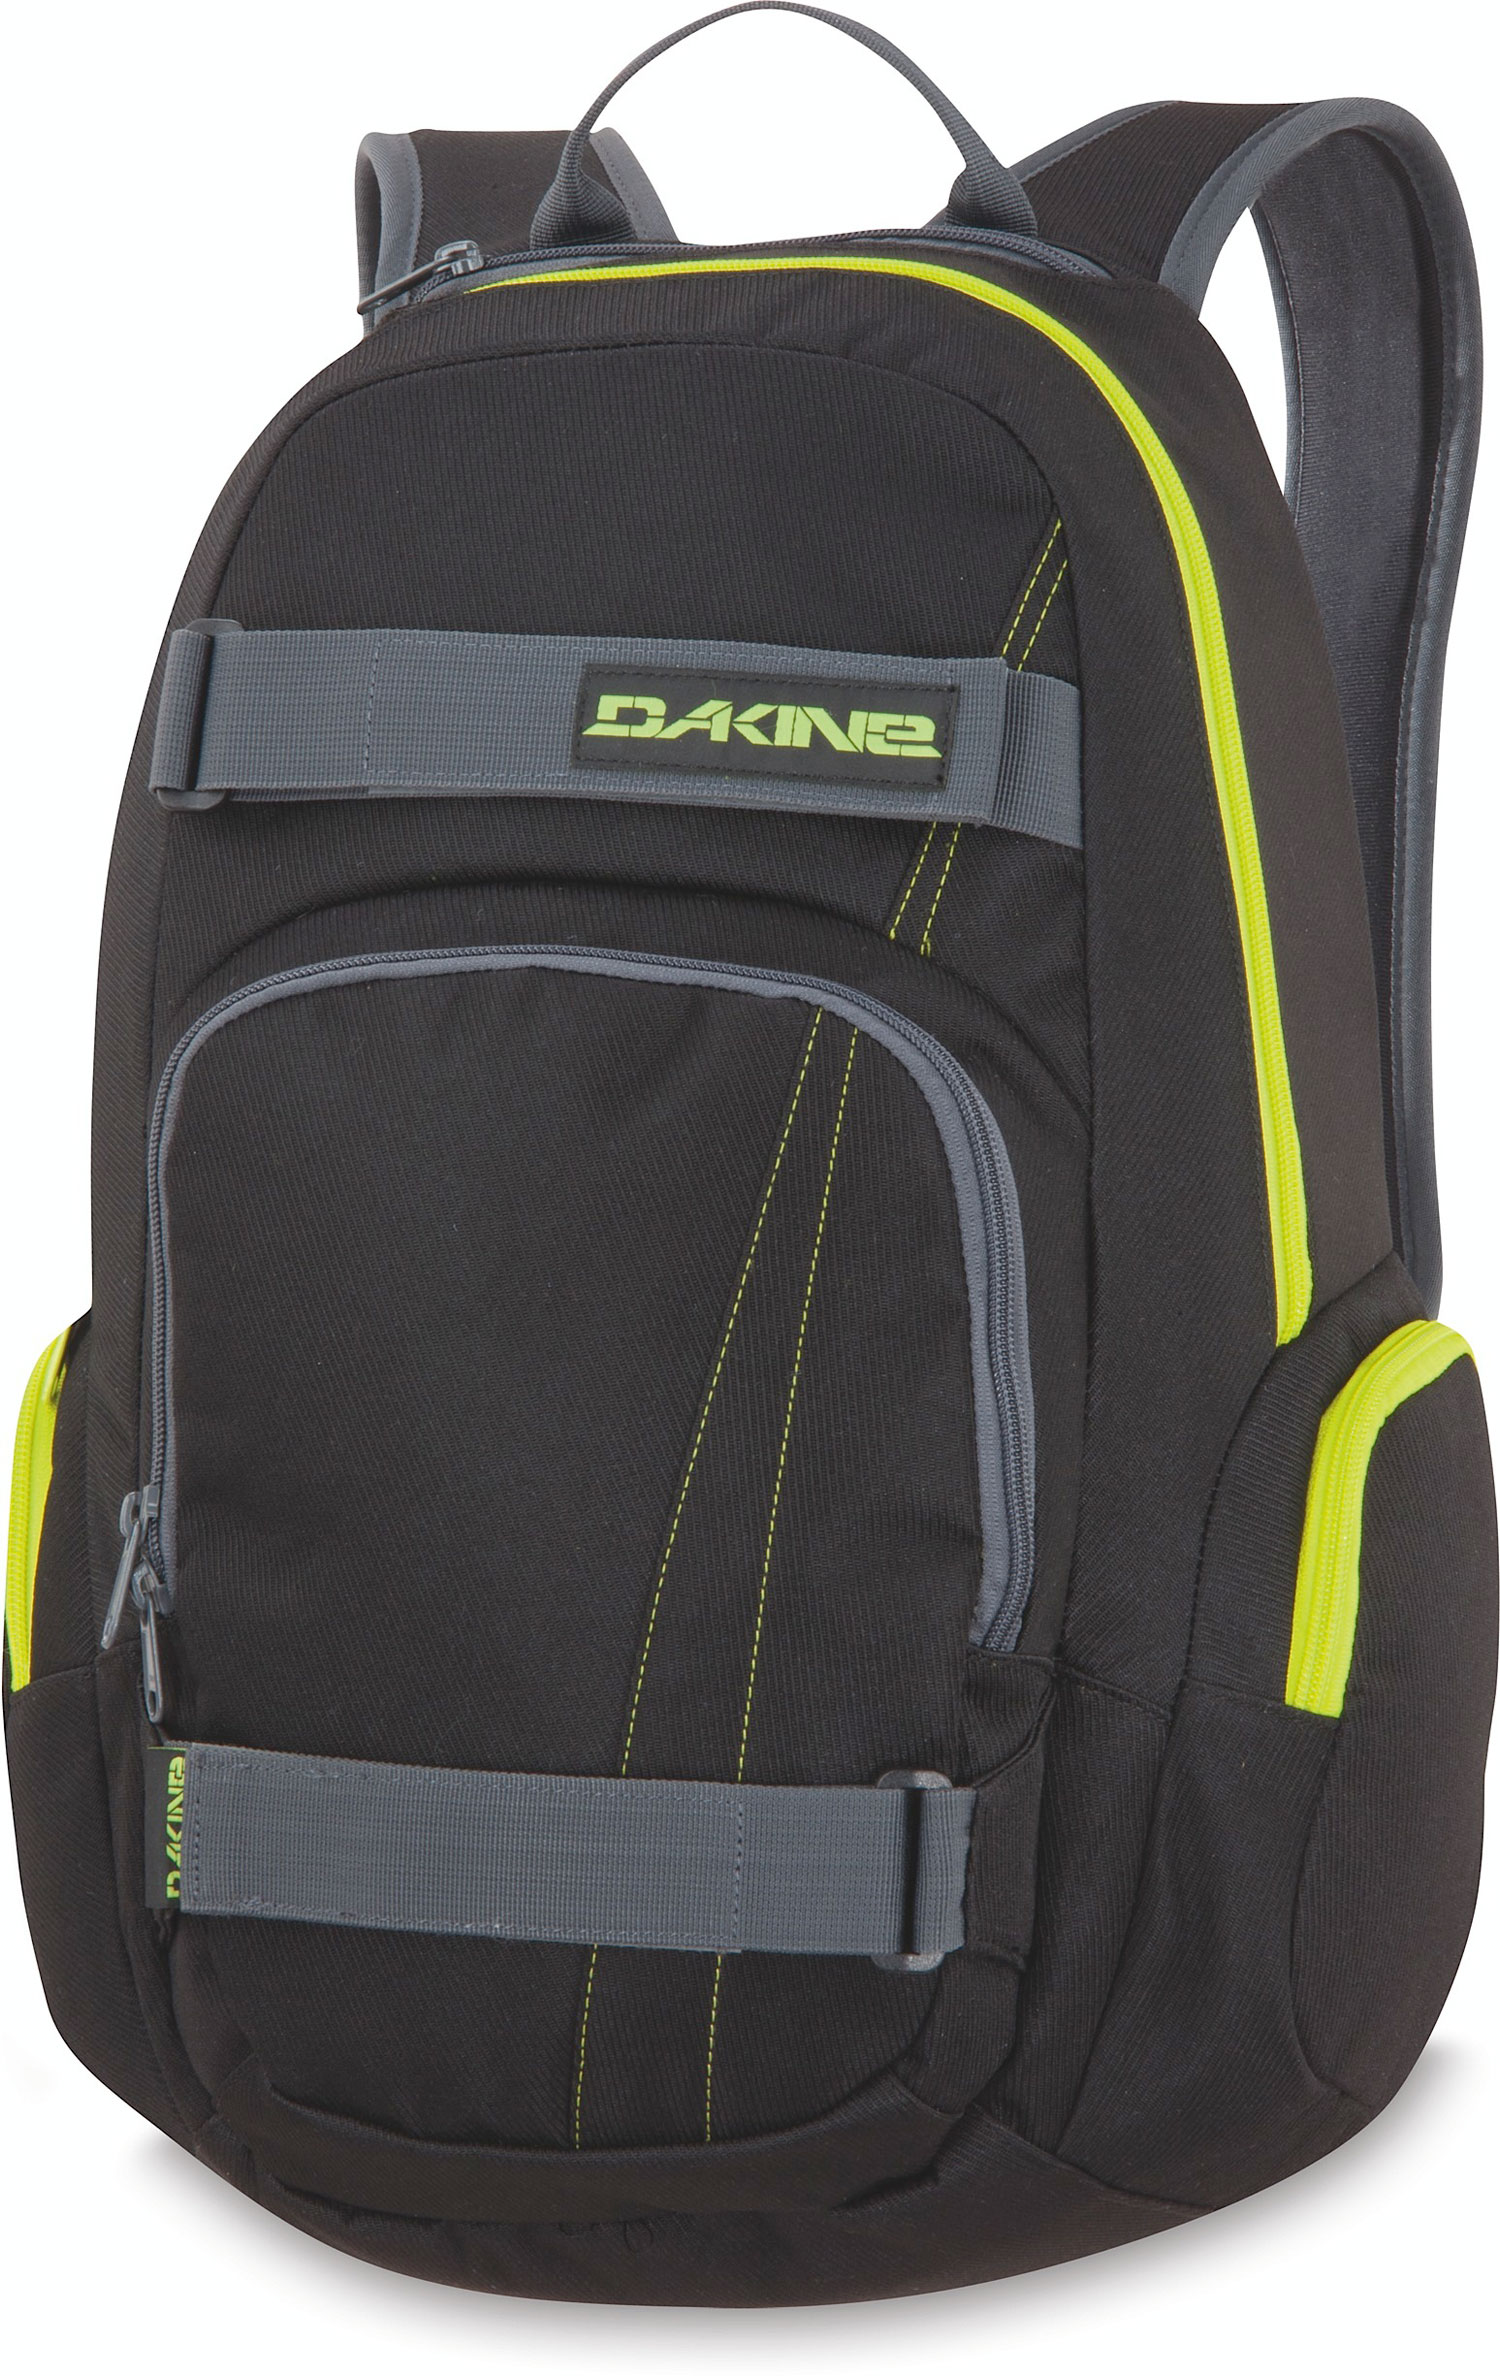 Surf Head to campus with your board in tow with the Atlas Pack.Key Features of the Dakine Atlas 25L Backpack: Skate carry straps. Fleece-lined sunglass pocket. Zippered side pockets for extra storage. Large main compartment and front organizer compartment. Made of 600D polyester. Volume: 1500 cubic inches. Measurements: Bottom Width: 12 in Middle Width: 12 in Top Width: 10 in Depth: 5 in Height: 20 in Strap Length: 36 in Strap Drop: 18 in Handle Length: 8 in Handle Drop: 3 in Weight: 1 lb 8 oz - $28.95